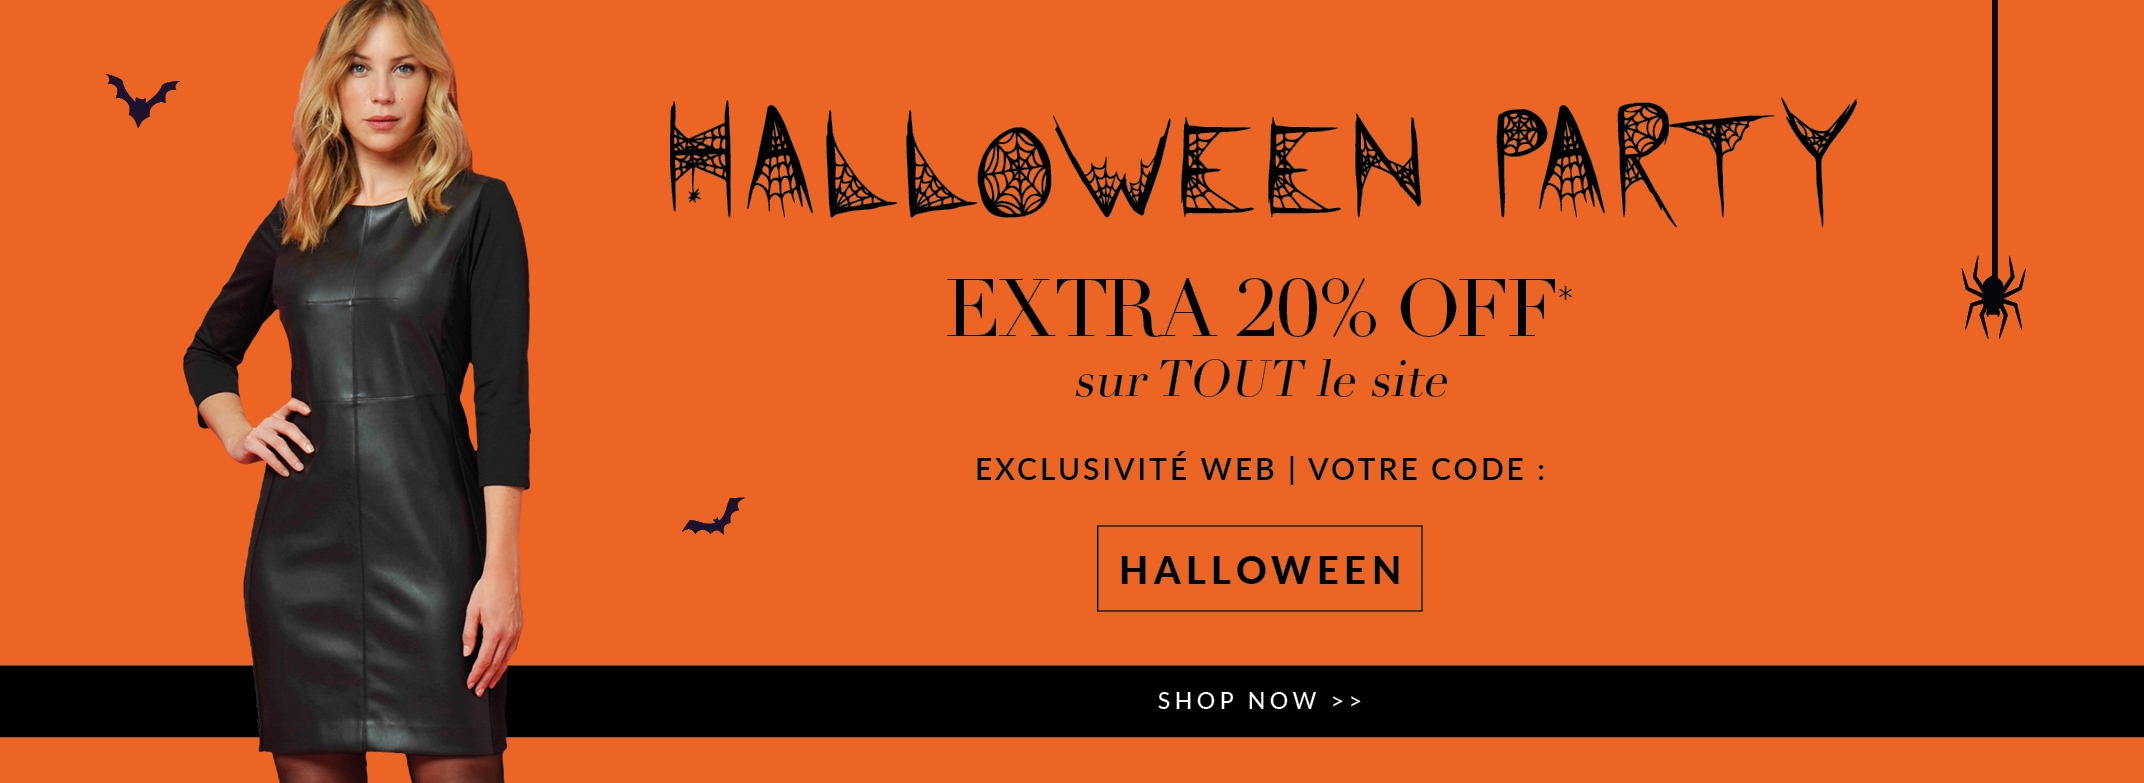 HALLOWEEN PARTY I Extra 20% OFF sur tout !